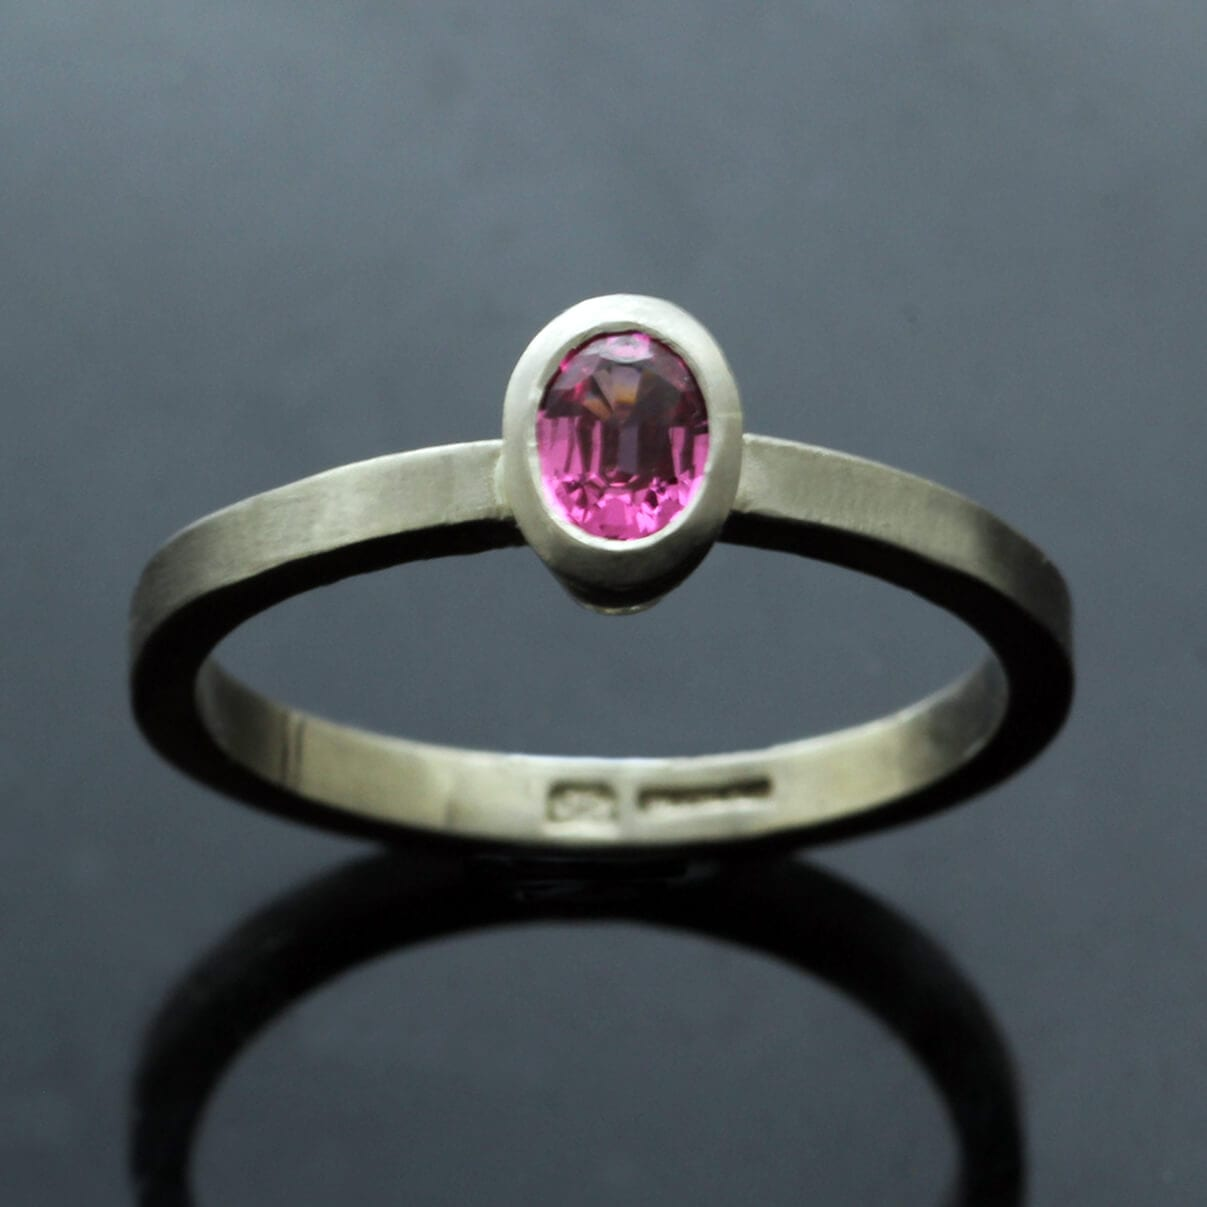 Contemporary stacking ring White Gold Pink Spinel gemstone